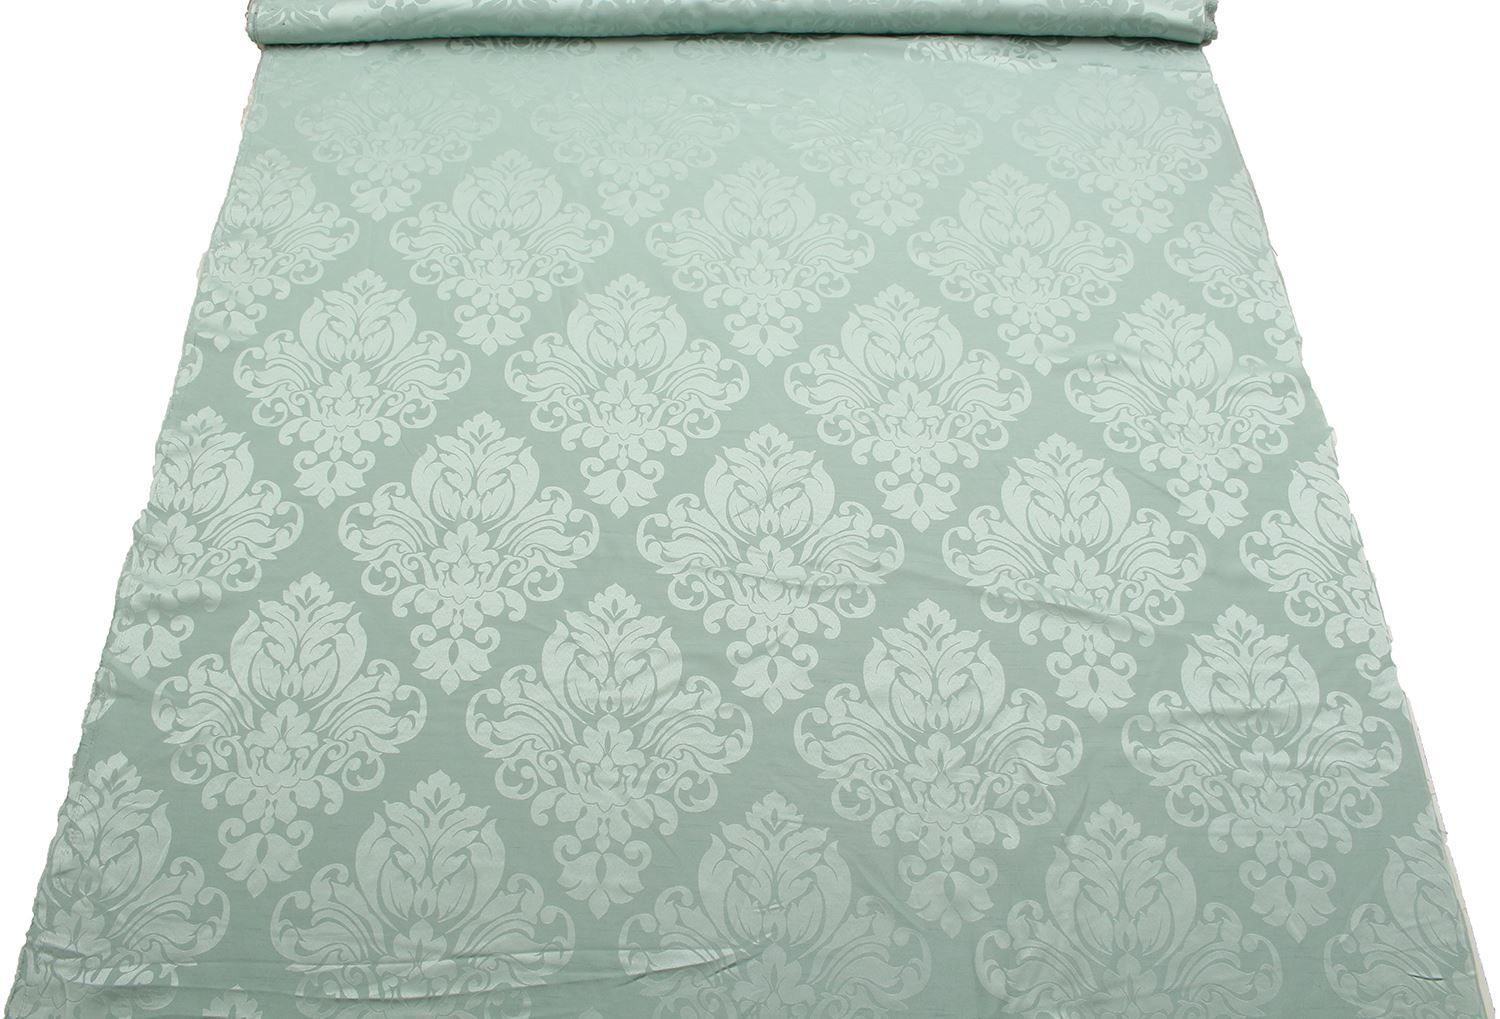 FLORAL-DAMASK-FAUX-SILK-JACQUARD-CURTAIN-UPHOLSTERY-FABRIC-MATERIAL-12-COLOURS thumbnail 35